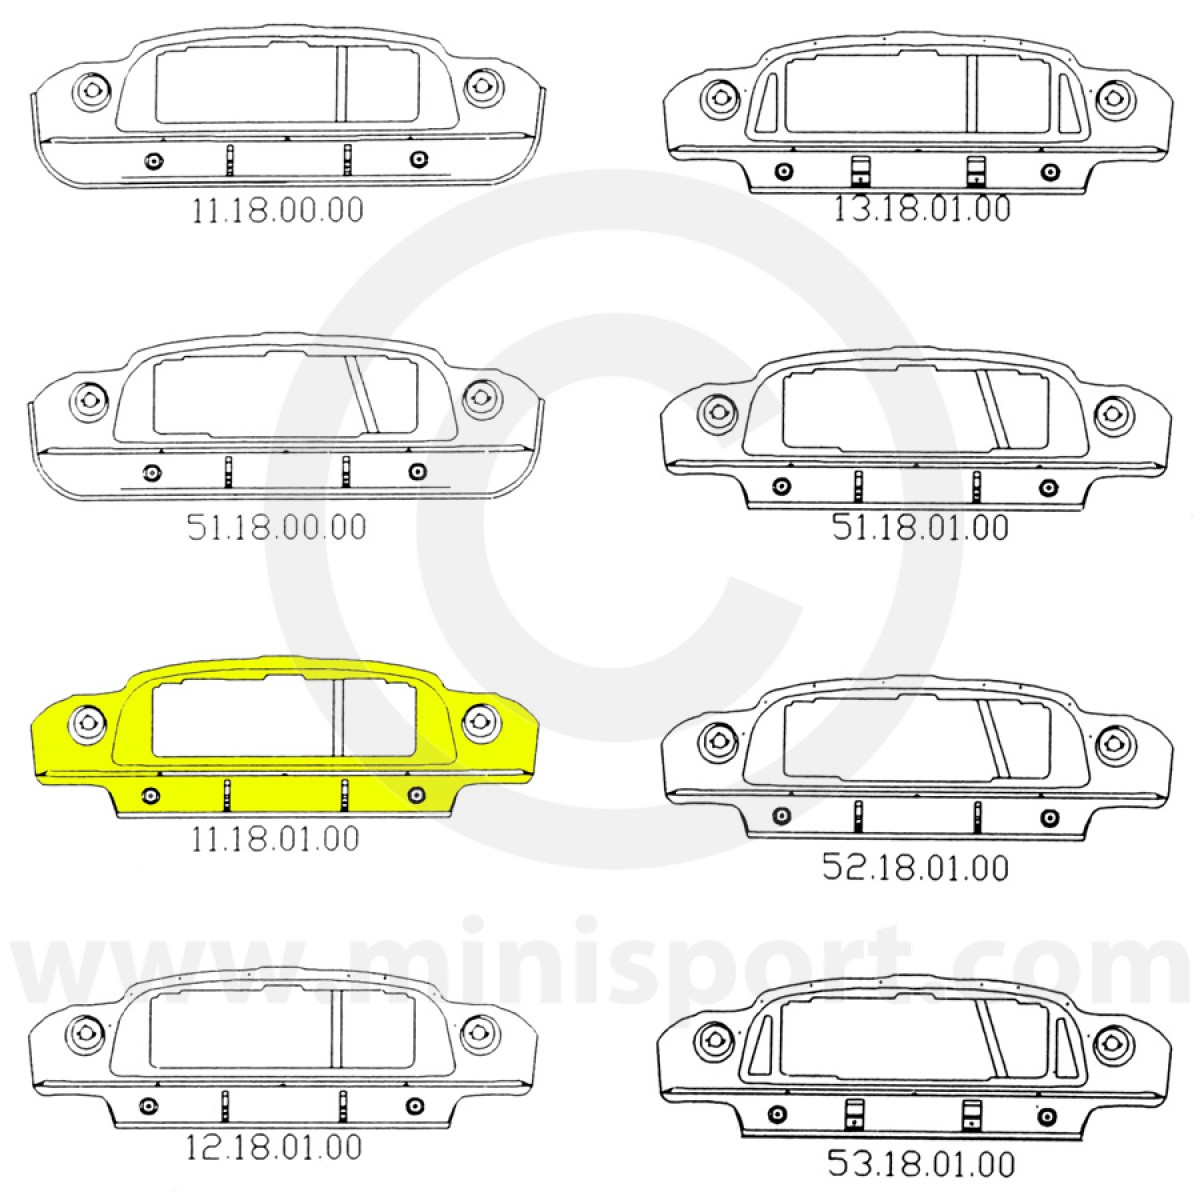 hight resolution of  mini front panel assembly options mcr11 18 01 00 mini cooper 64